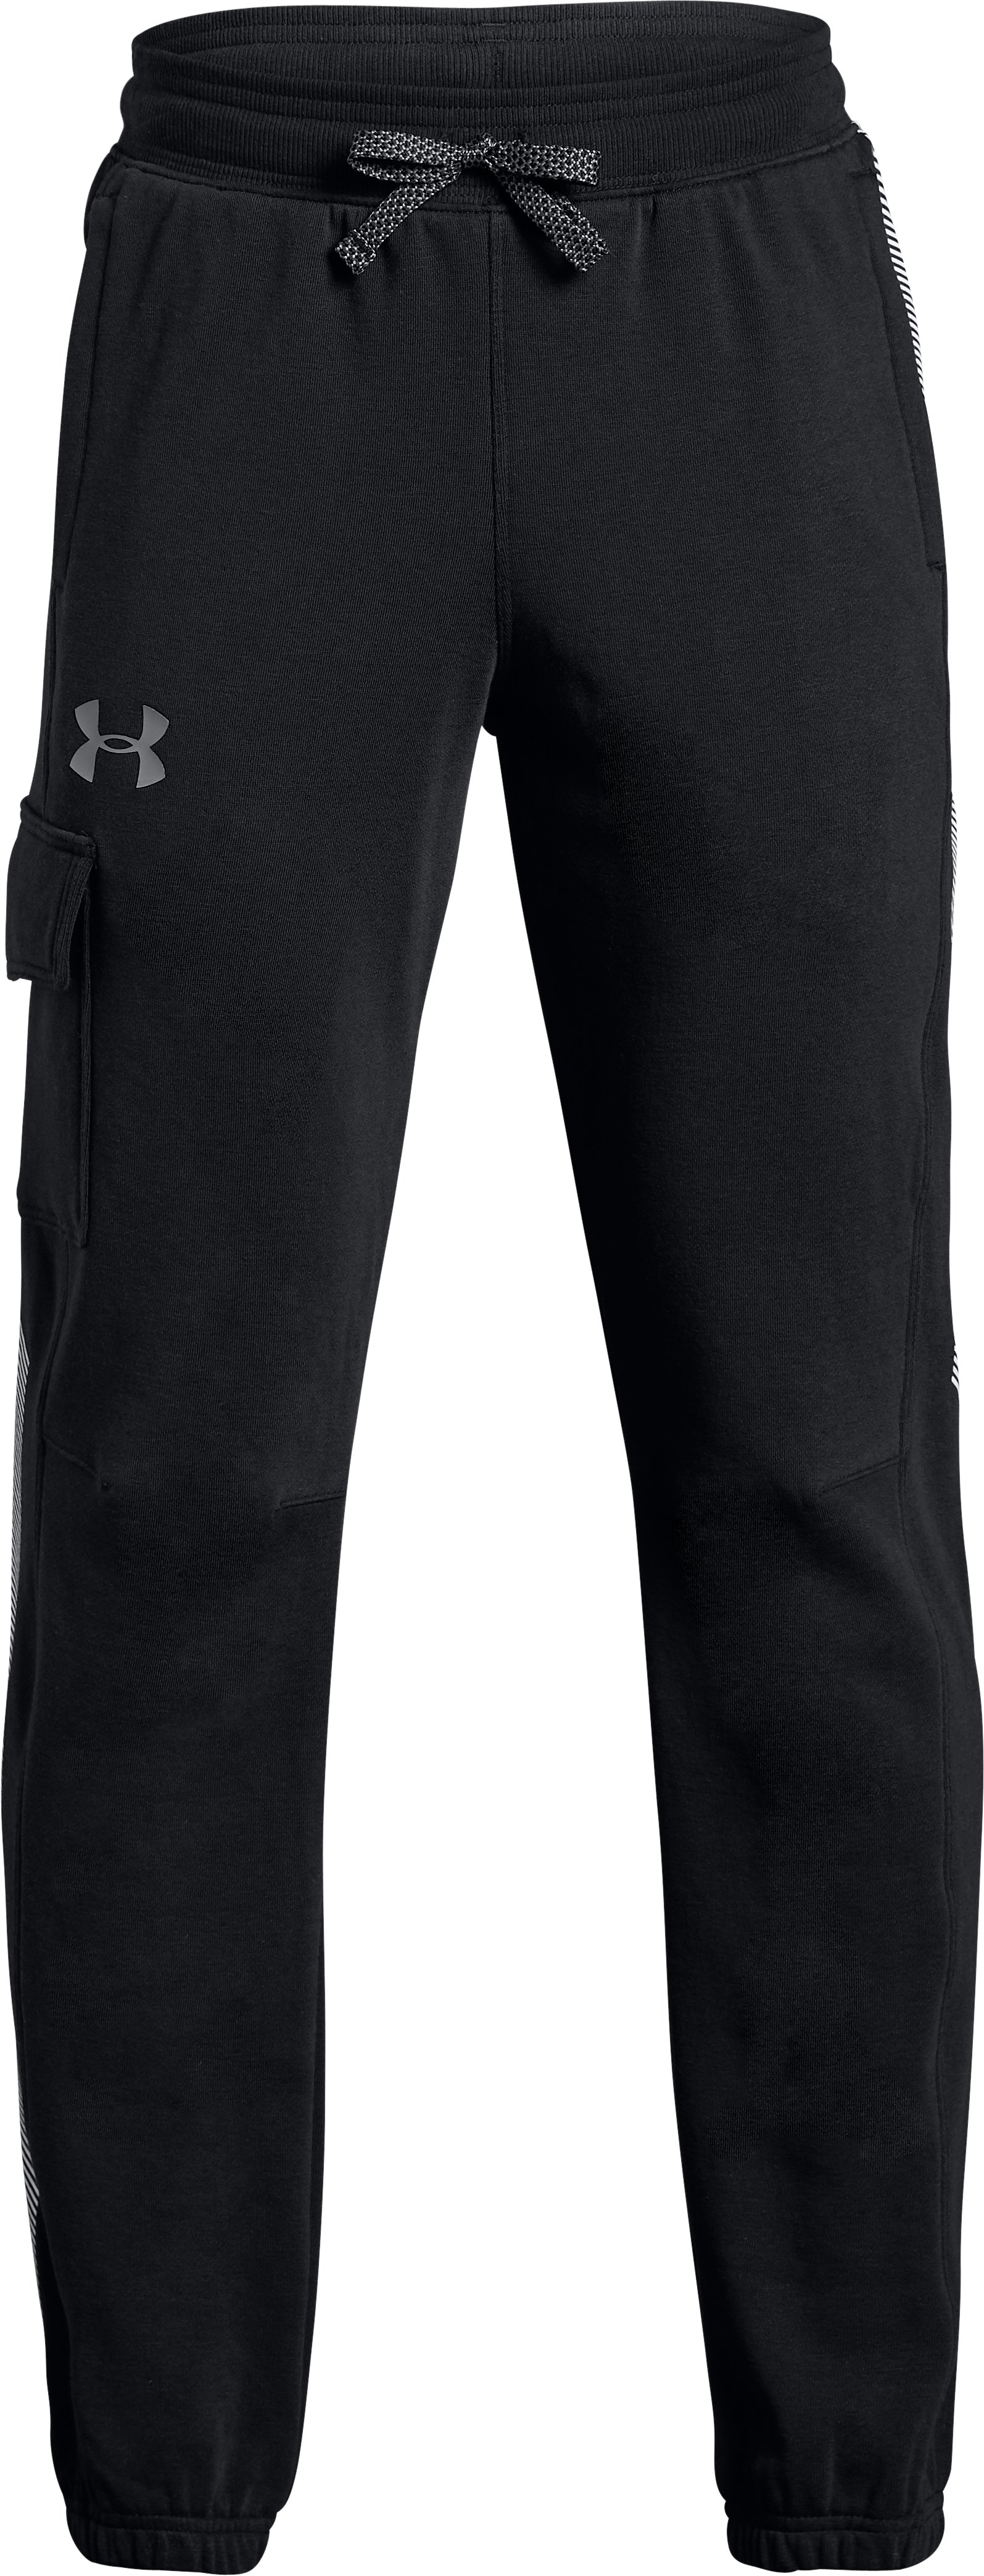 stretch joggers Boys' UA Microthread Terry  Joggers UA Microthread technology in the fabric dries faster, won't cling to you, won't chafe & <strong>stretches</strong> without absorbing sweat.